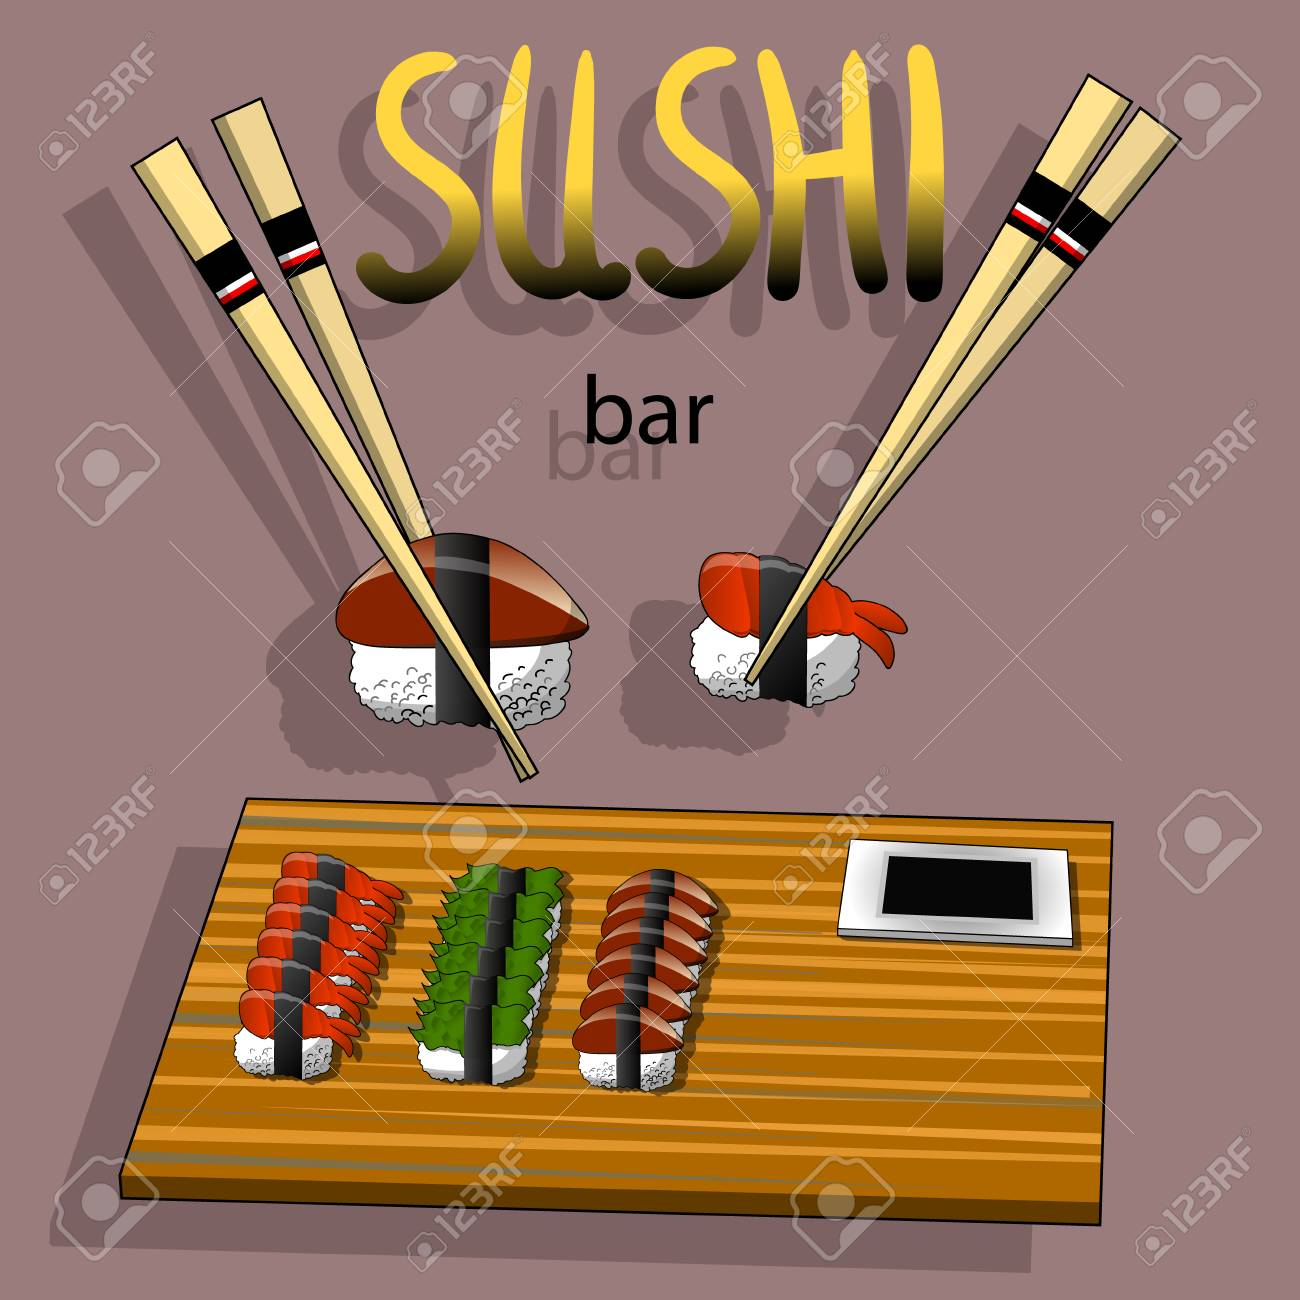 Concept Design Of The Invitation Sushi Restaurant Vector Illustration Royalty Free Cliparts Vectors And Stock Illustration Image 102059894